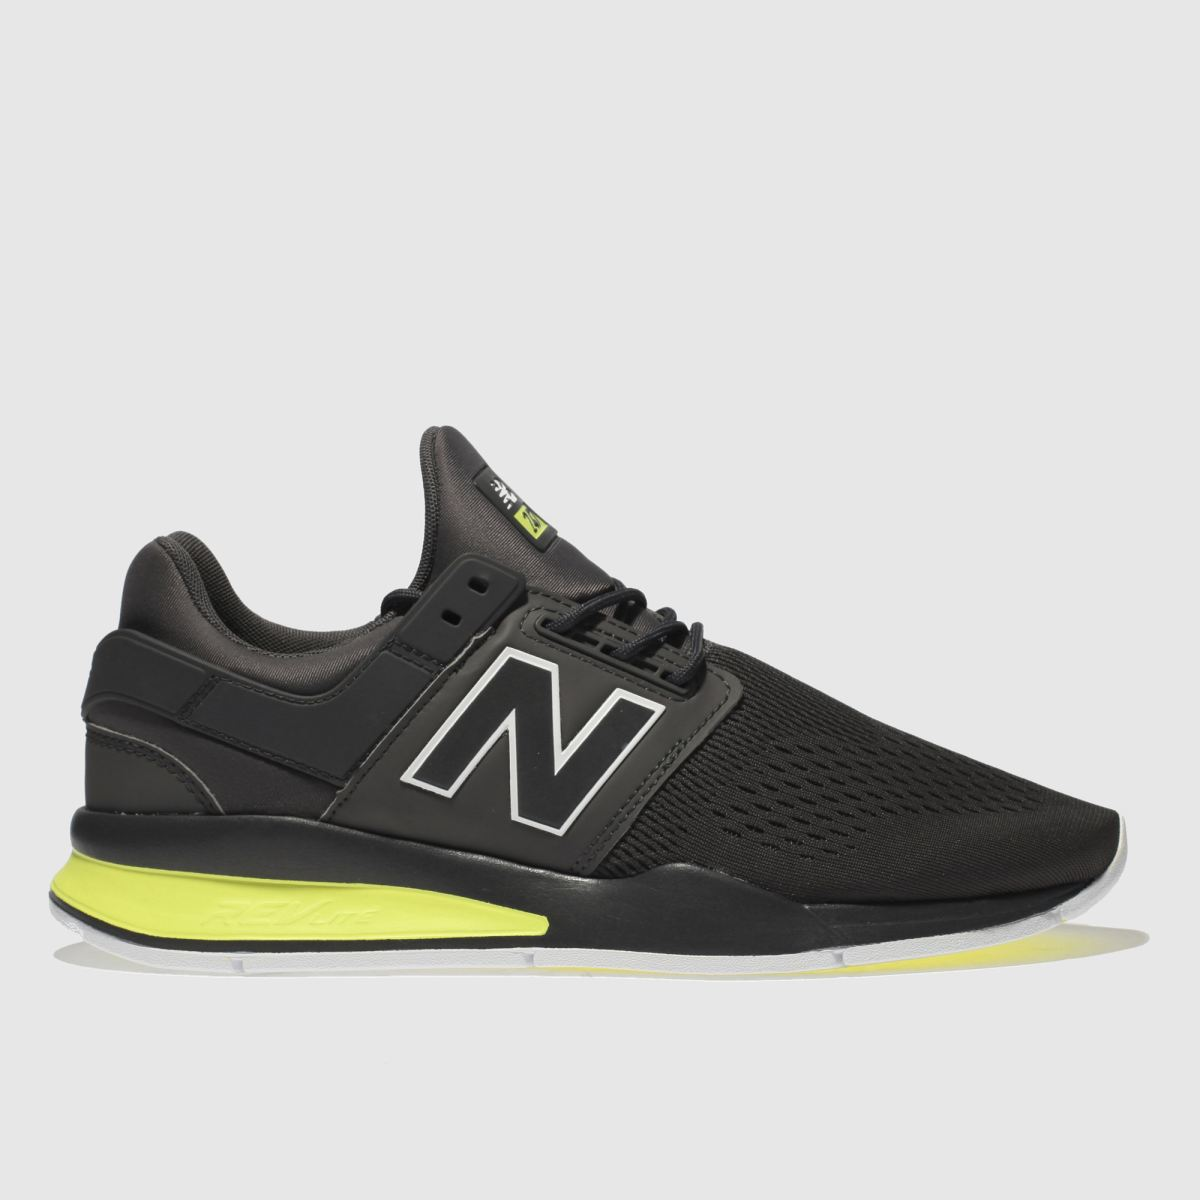 New Balance Dark Grey 247 V2 Trainers